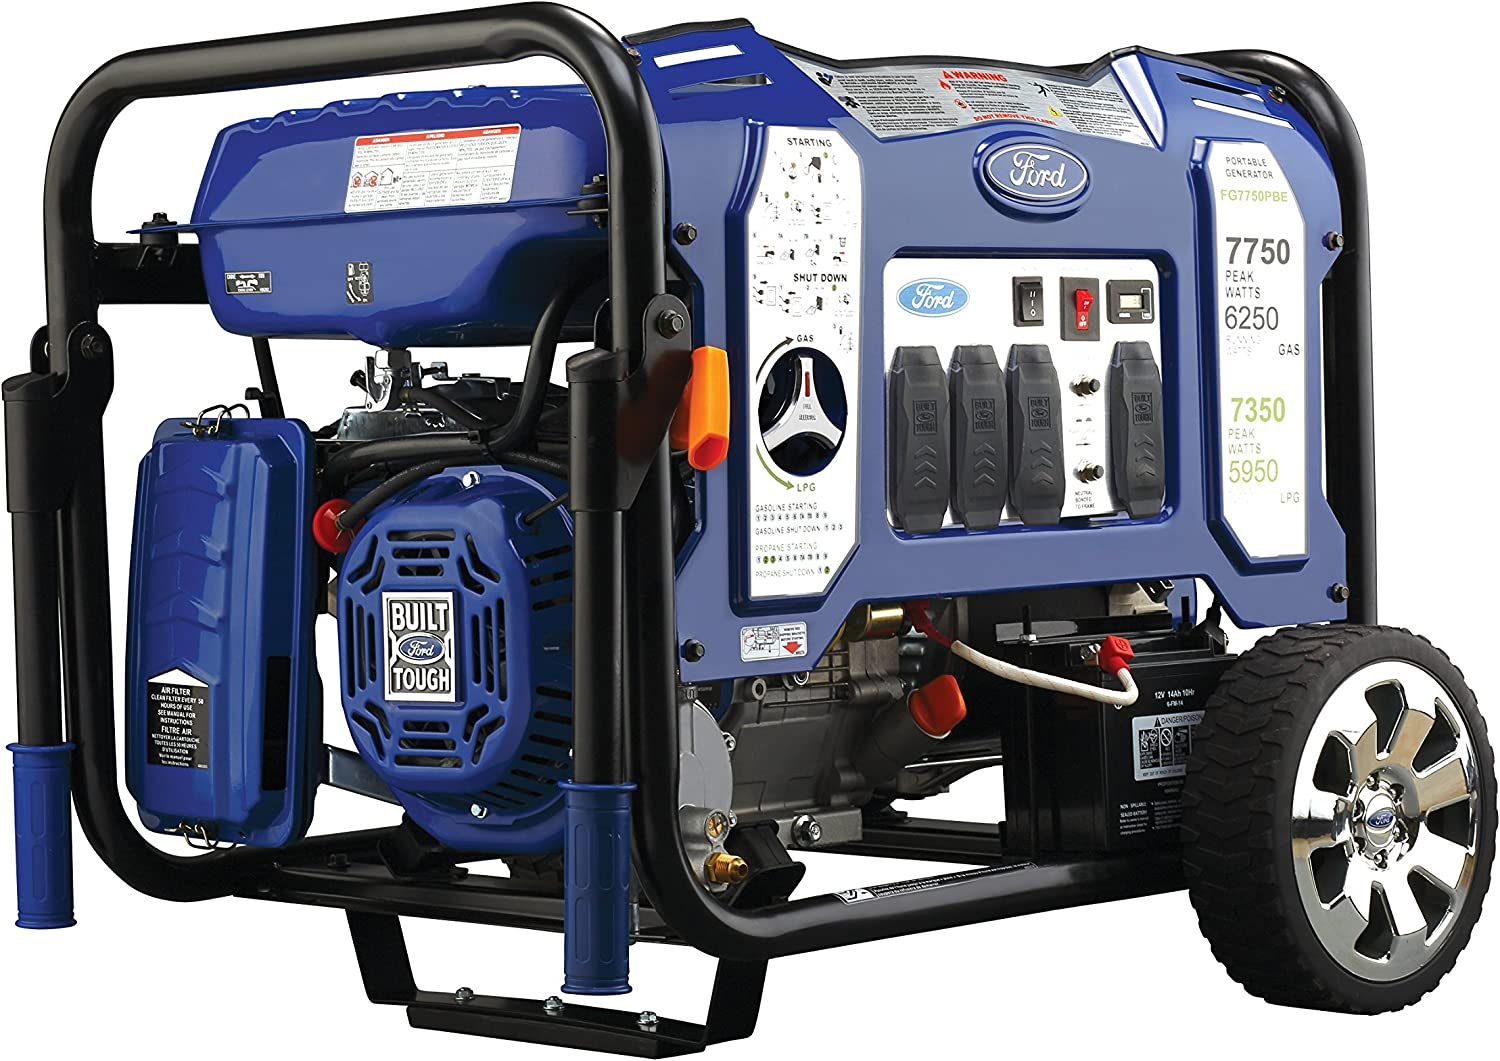 Ford 7,750W Portable Switch Go Technology and Electric Start, FG7750PBE Dual Fuel Generator